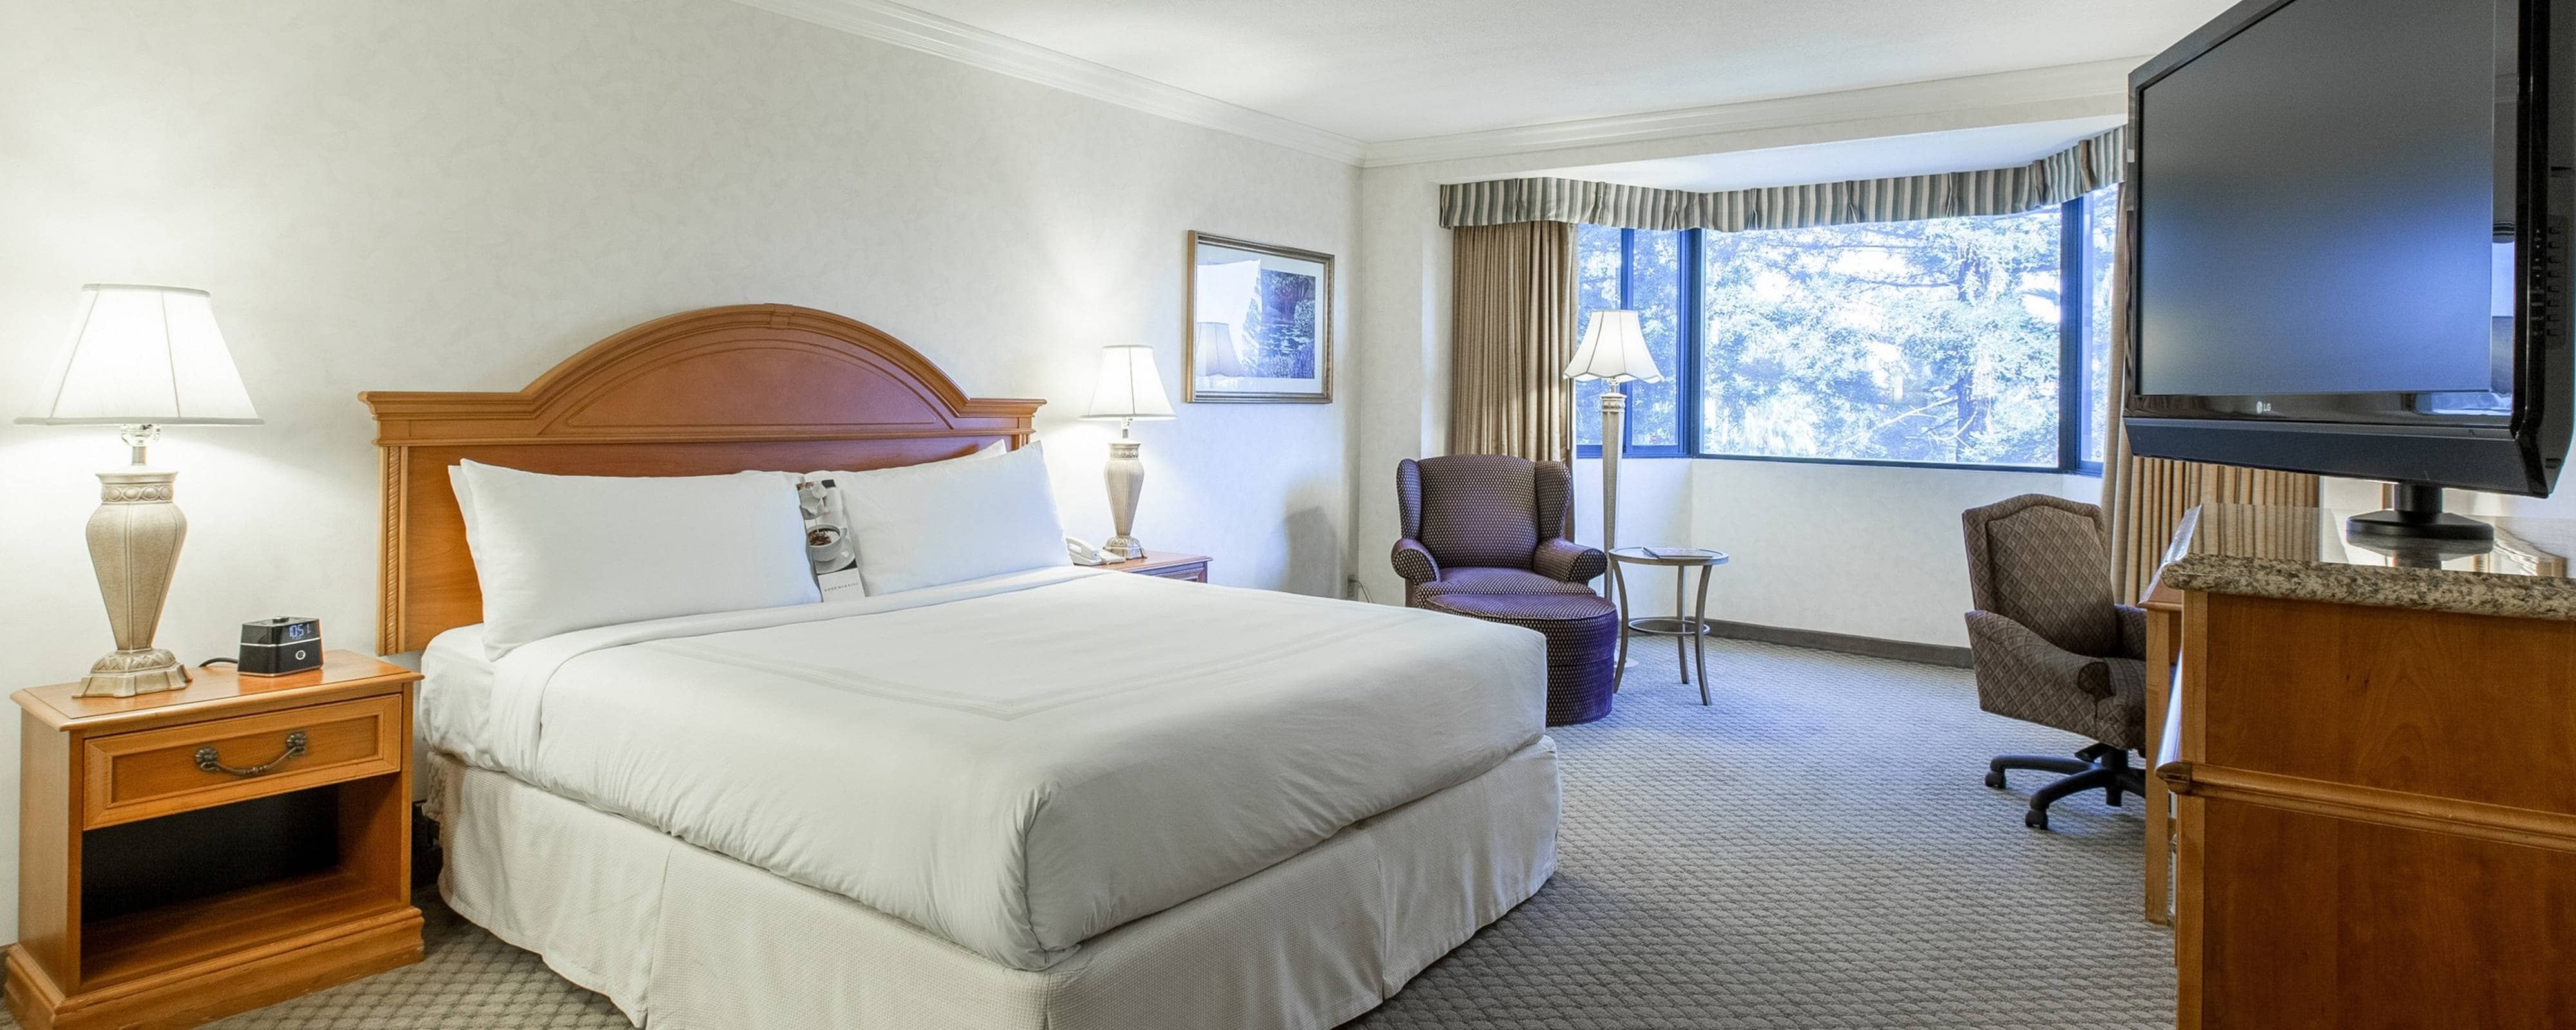 Rancho Cordova Hotels Luxury Hotels In Rancho Cordova